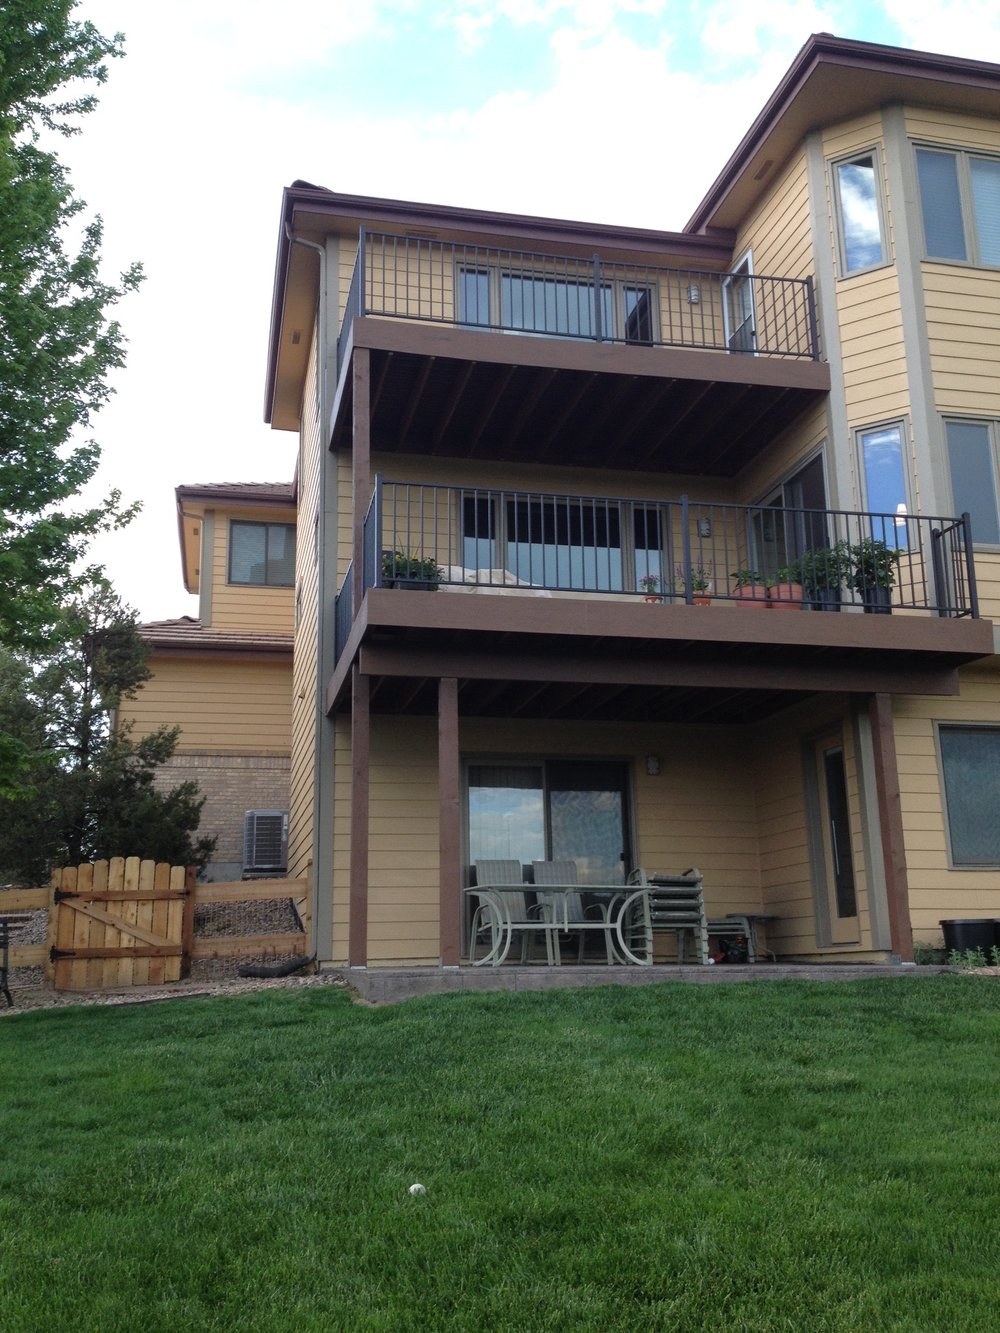 second and third story decks above stamped concrete in parker, co  After the existing concrete patio was removed, a new stamped concrete patio was constructed. These decks were then built with TimberTech decking and Fortress Fe26 railing.